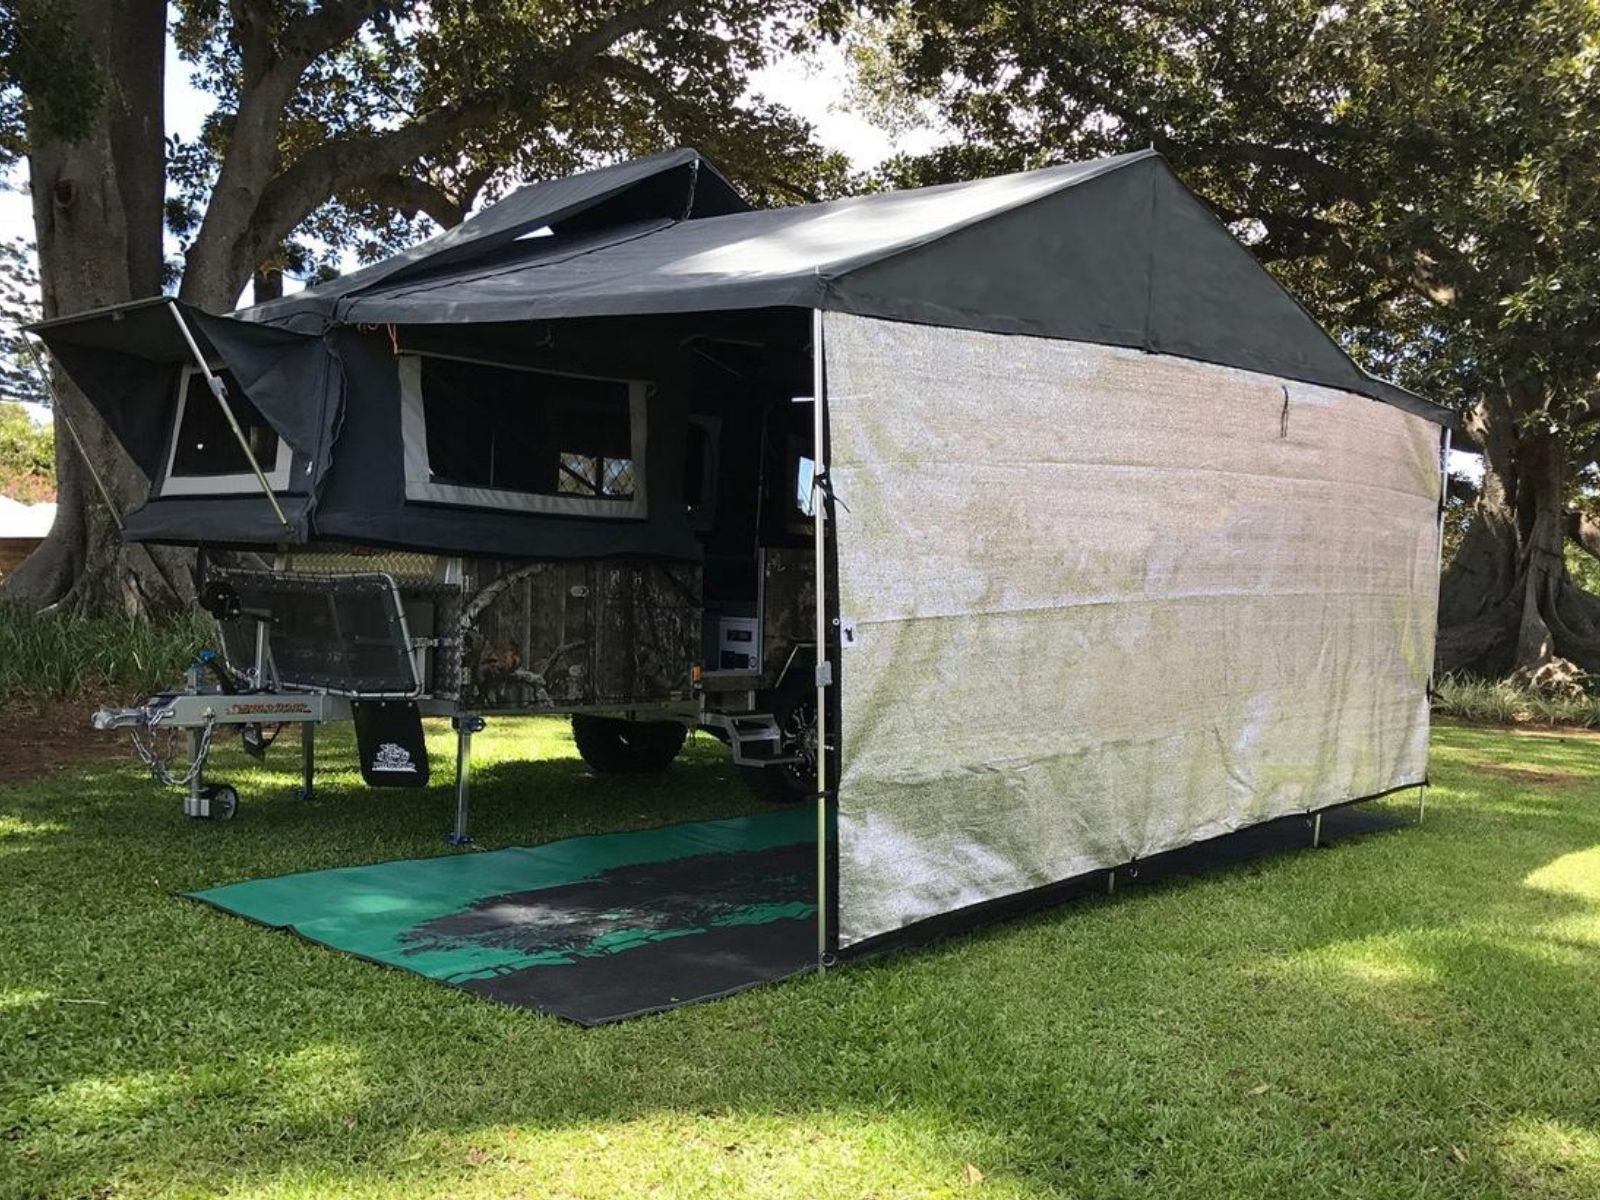 5.6m Cool shade privacy screen for the front of the camper trailer to keep the heat down